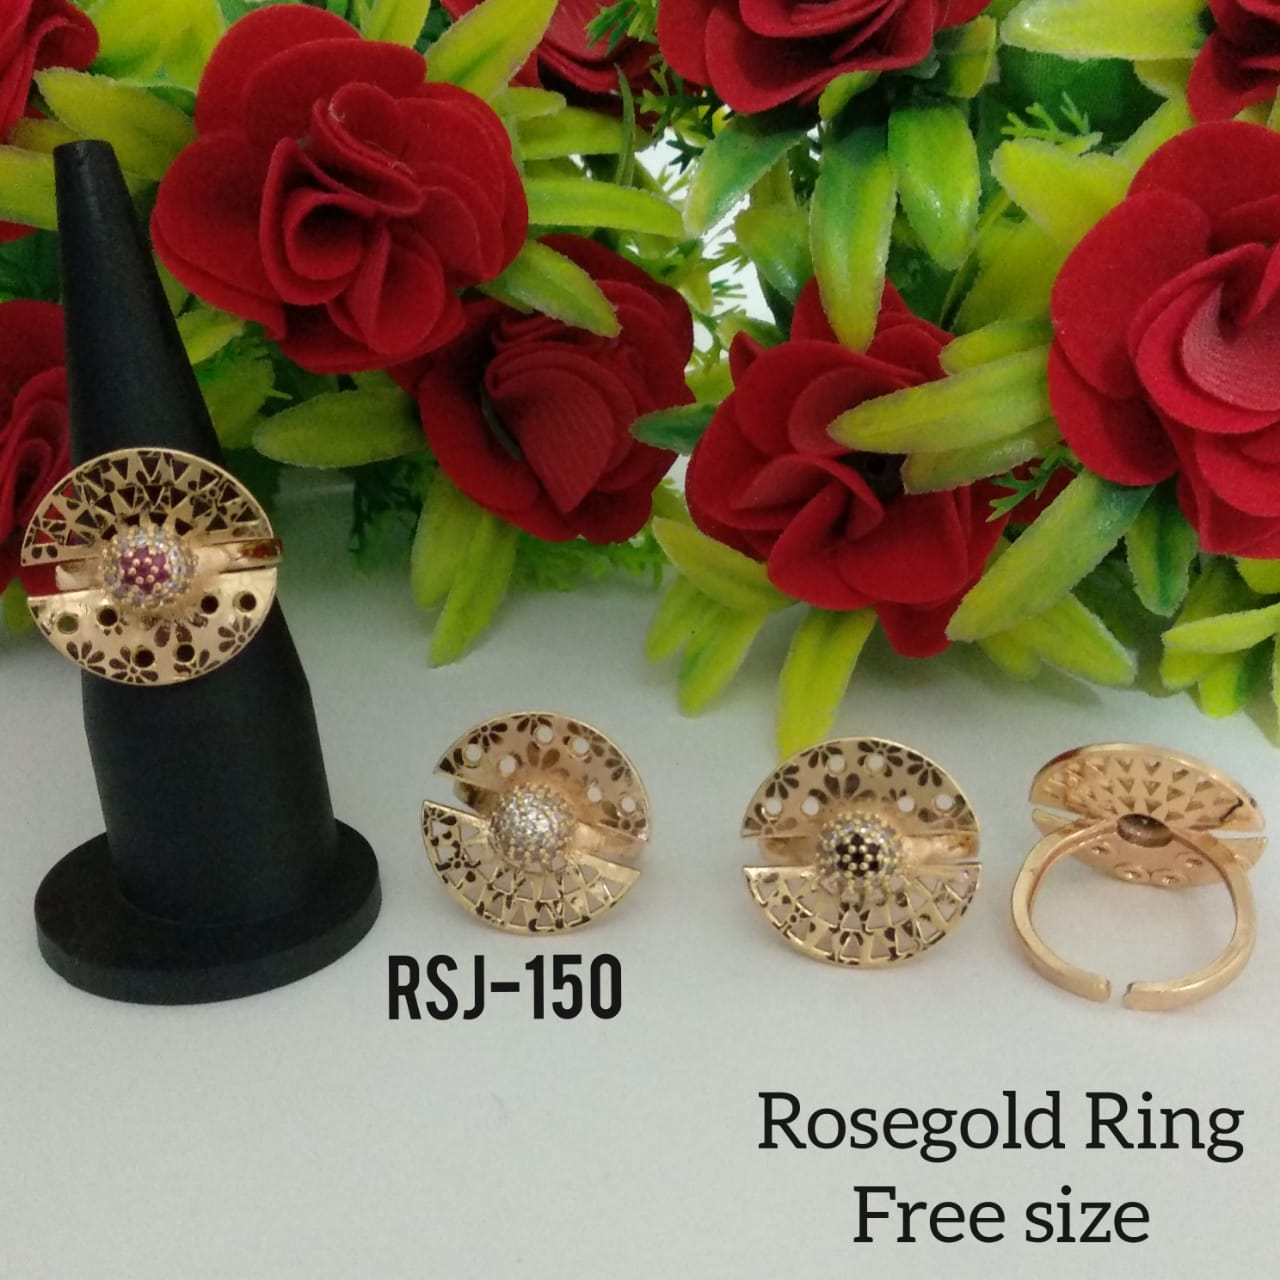 RoseGold Ring Free Size